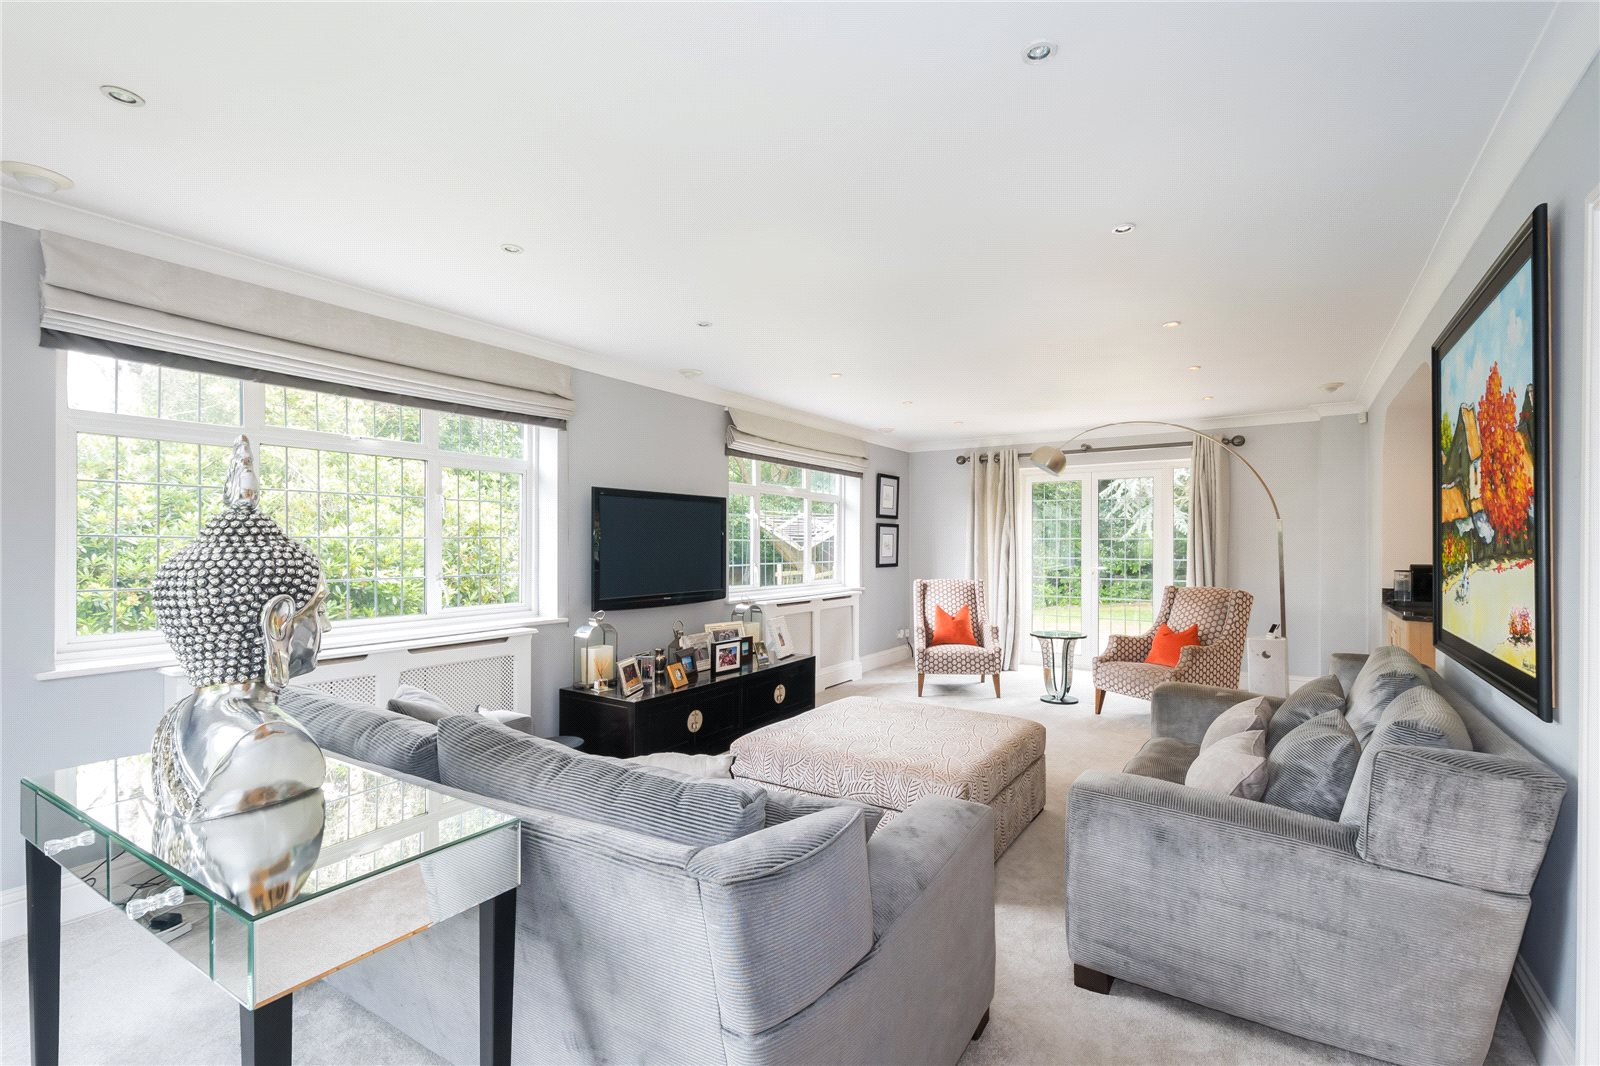 Additional photo for property listing at Howards Thicket, Gerrards Cross, Buckinghamshire, SL9 Gerrards Cross, Αγγλια